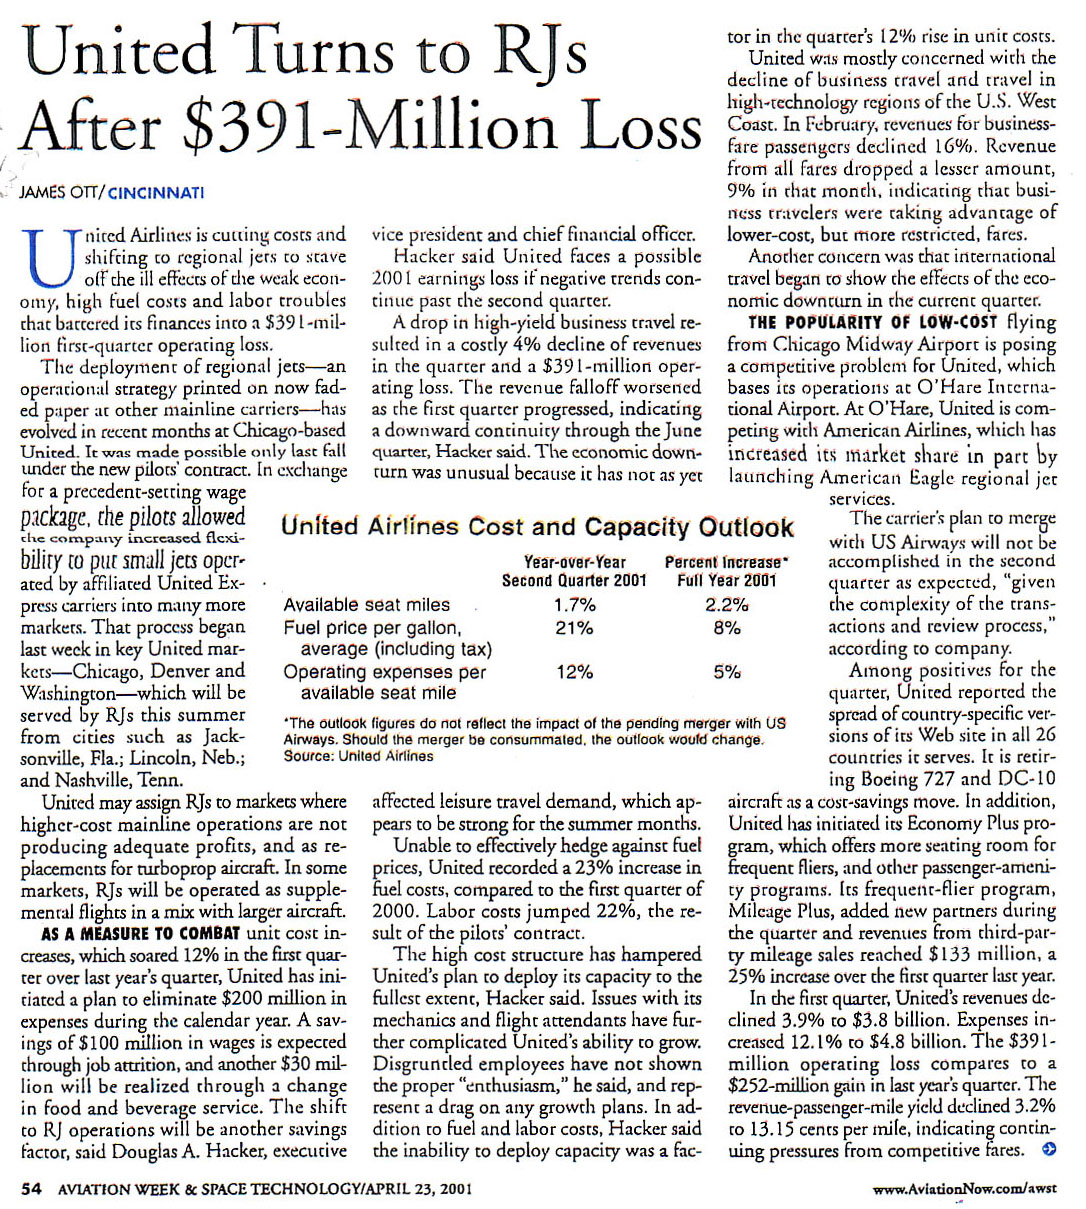 aviation week&space technology-april 23, 2001-united turns to rjs after $391-million loss.jpg